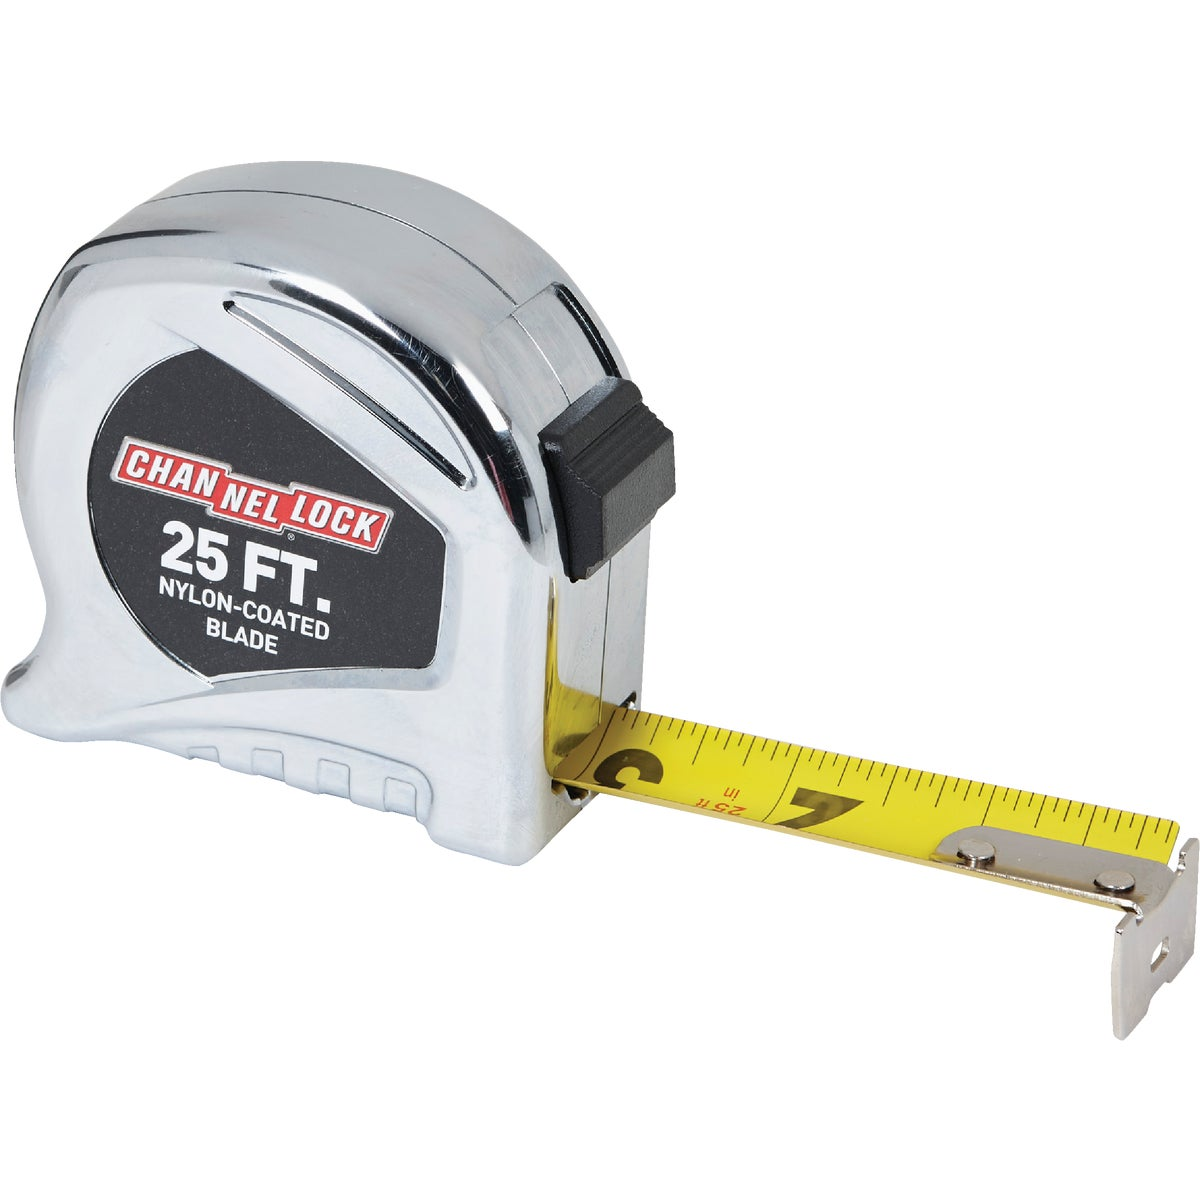 25' TAPE MEASURE - CL425 by Channellock Products